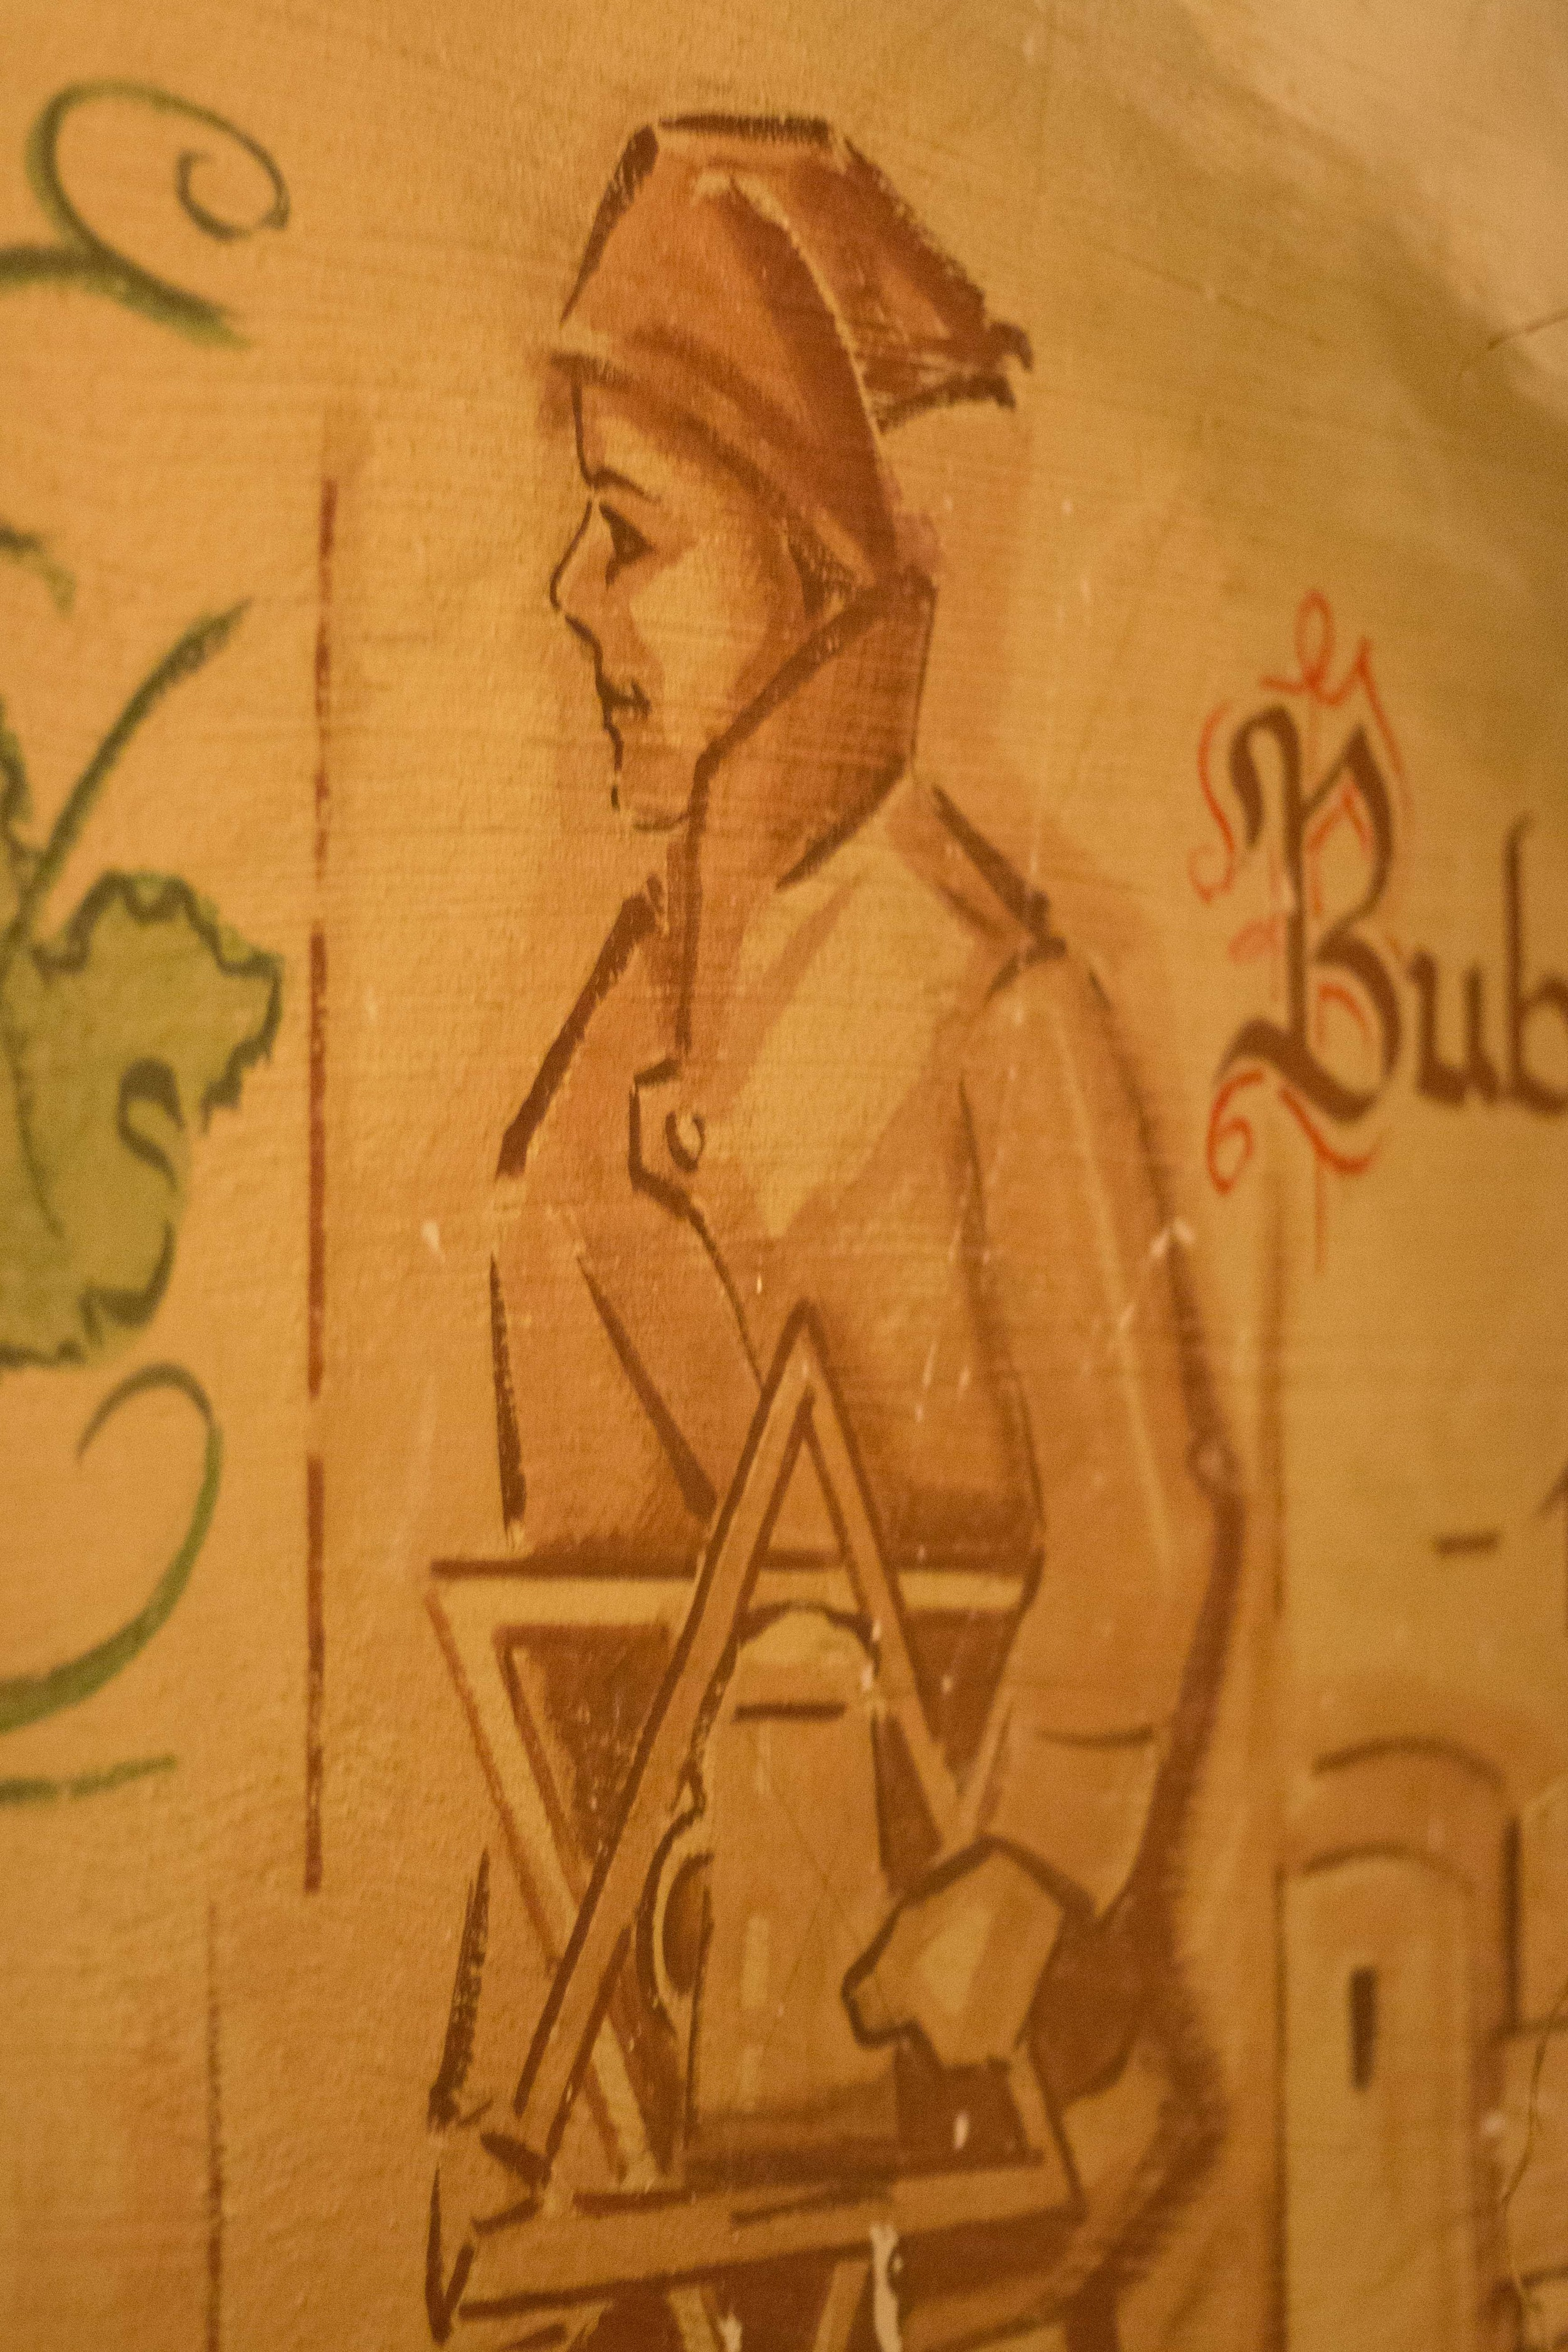 Speyer has a long history with various religious groups. Here, their connection with the Jewish communtiy is showcased.